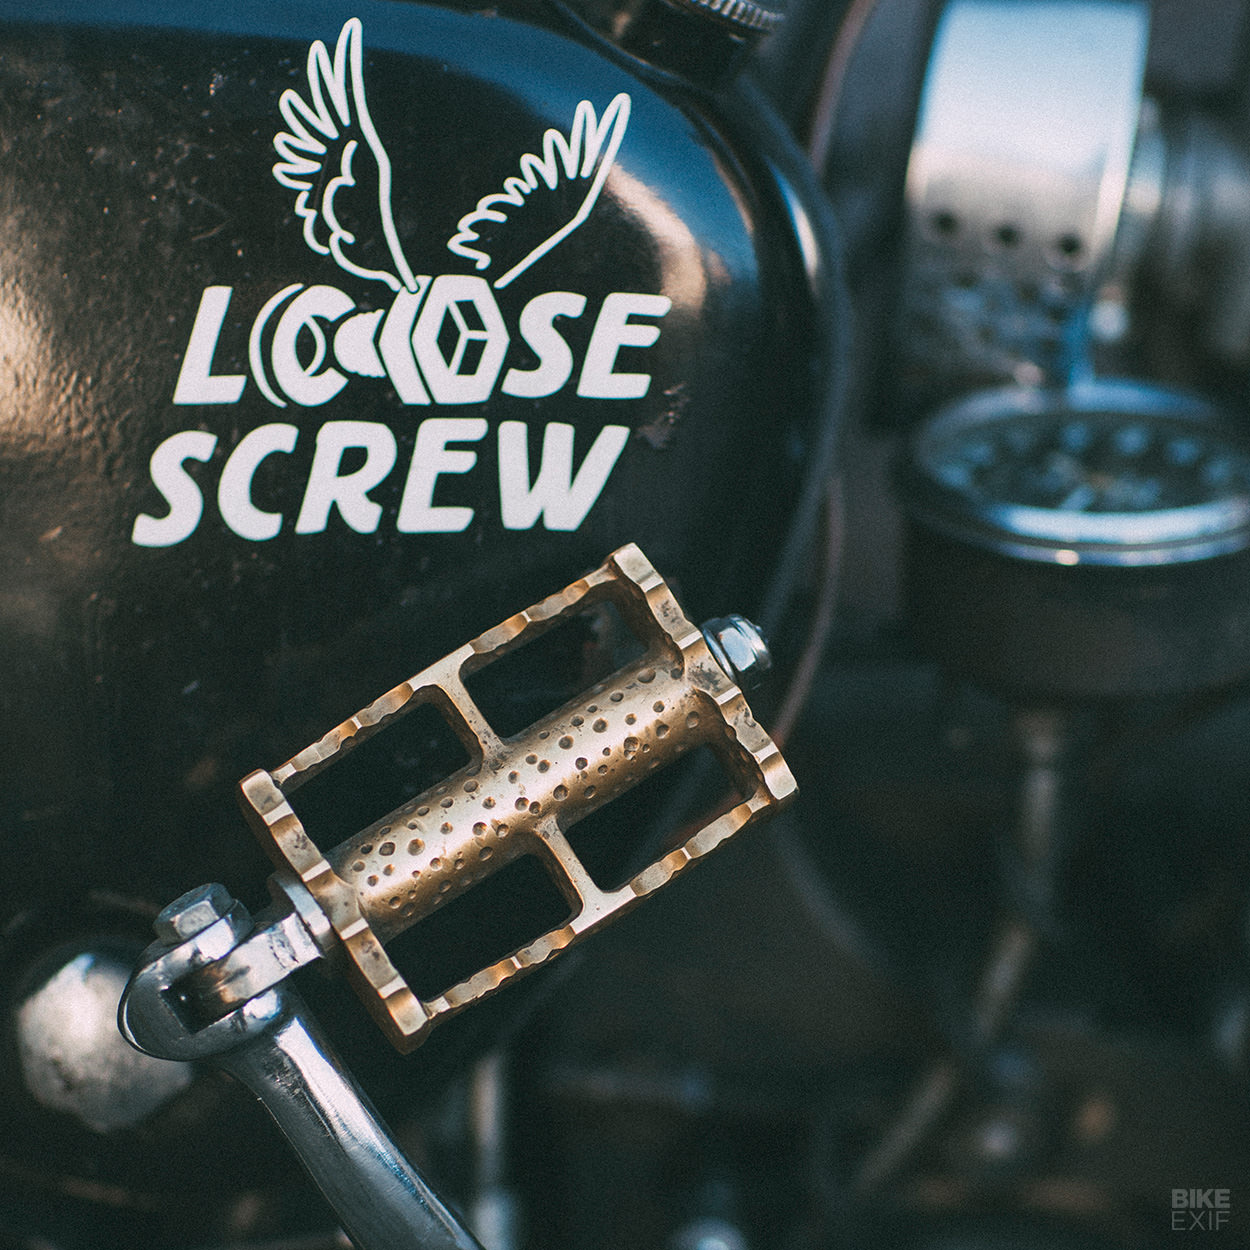 Custom BSA A10 rat bike from the Loose Screw workshop